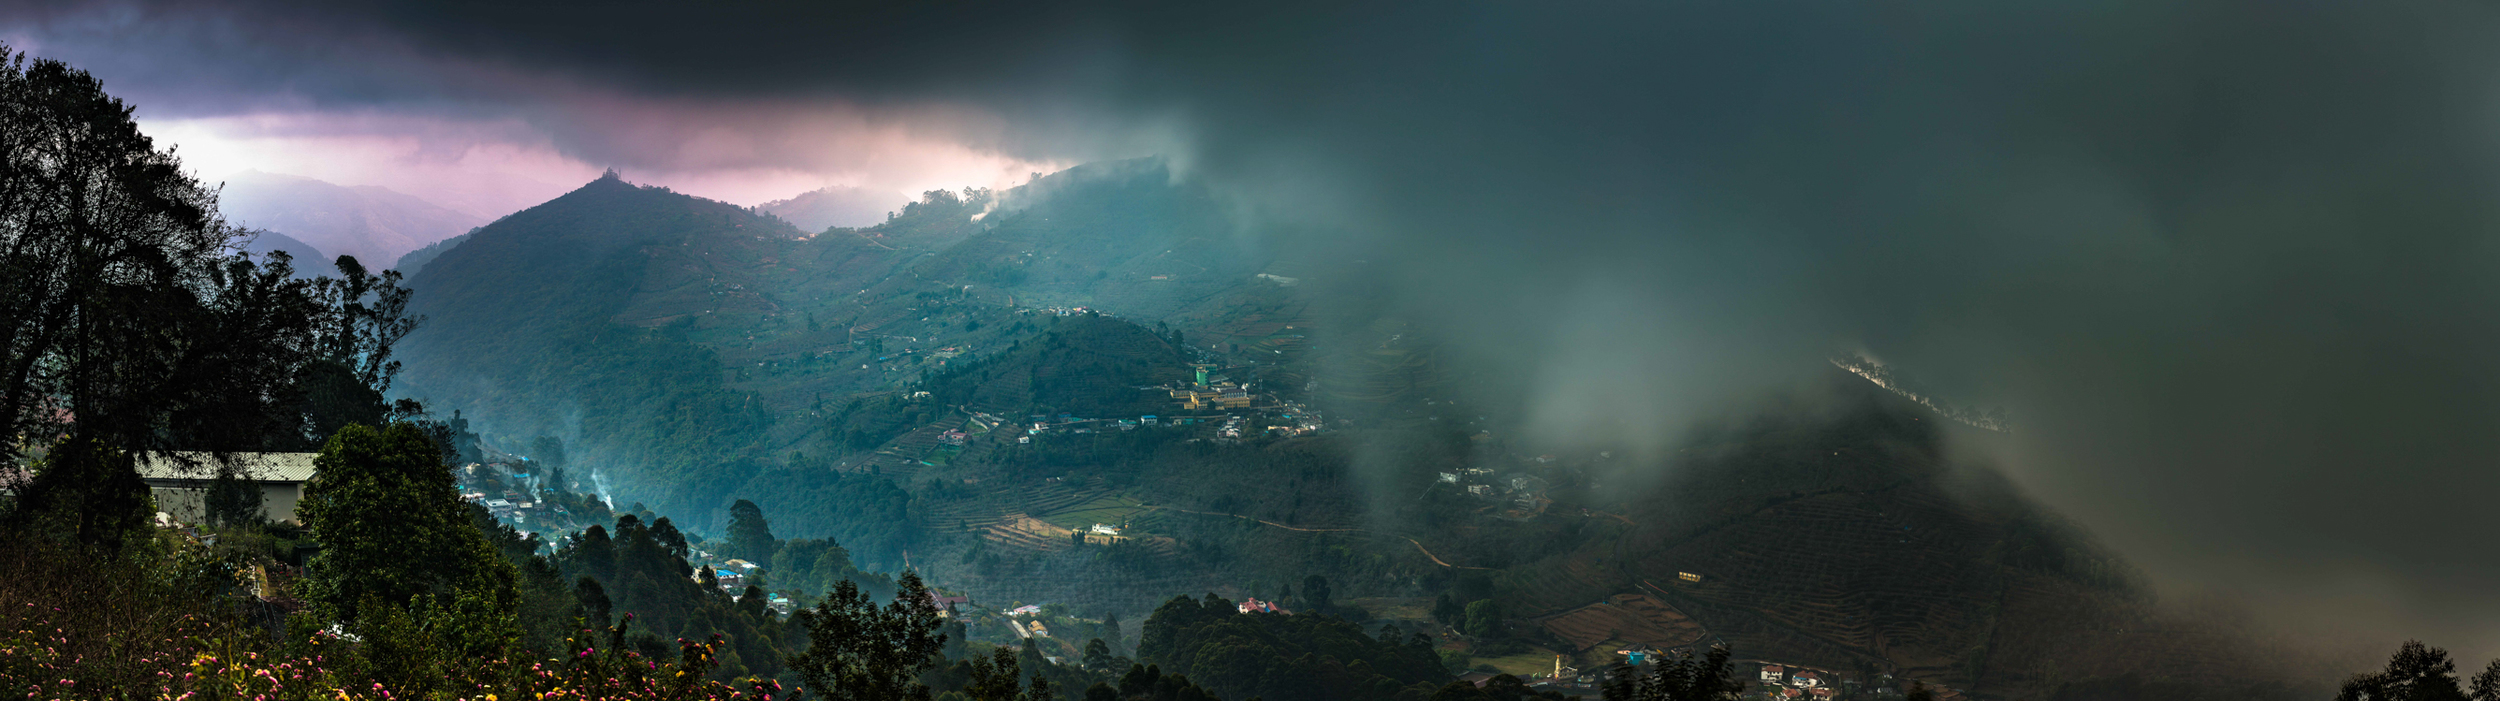 Evening fog blanketing Kodaikanal.